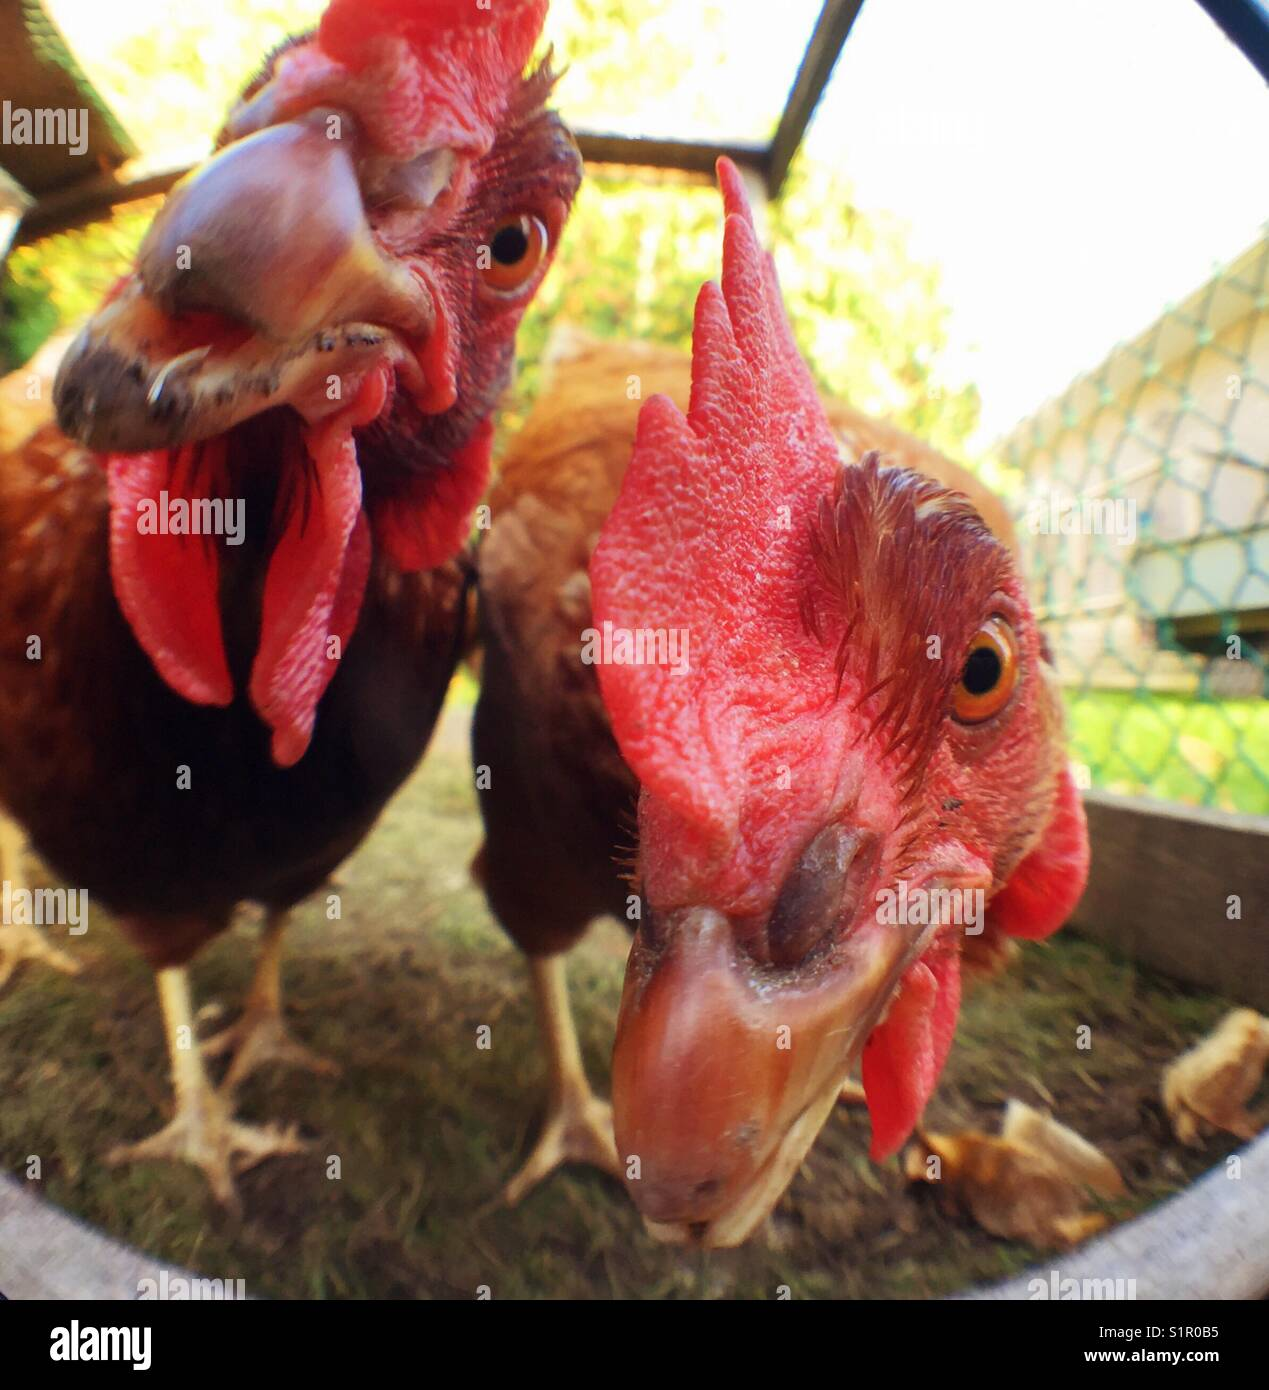 Closeup of two Rhode Island Red chicken faces checking out the photographer - Stock Image